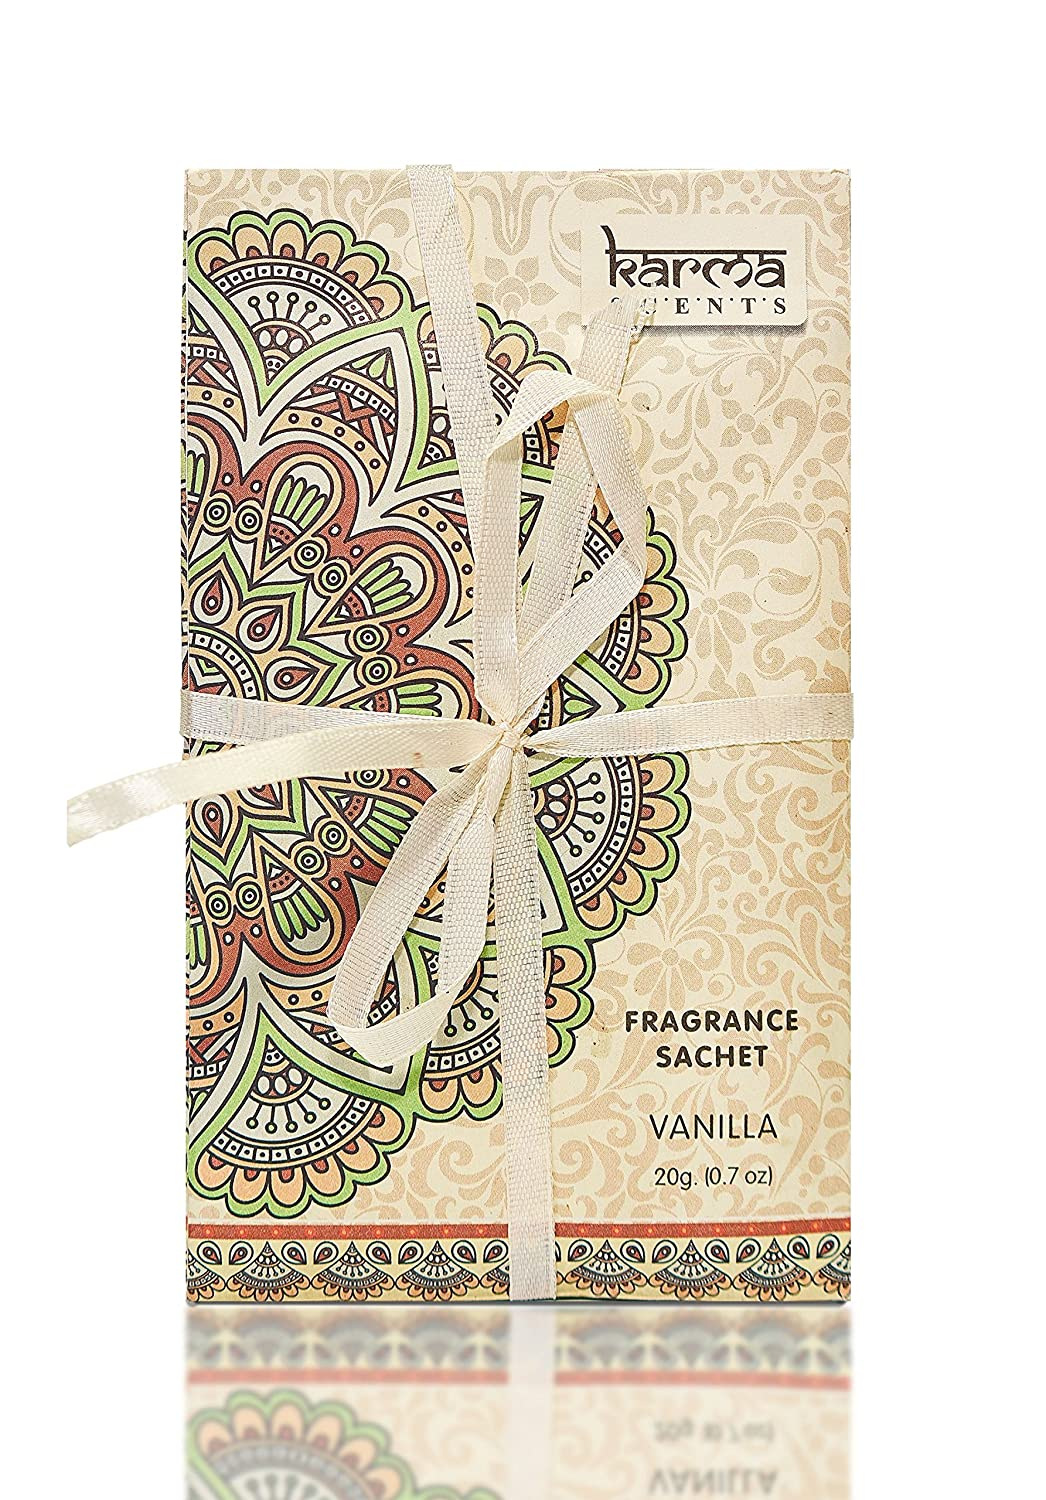 Premium Vanilla Scented Sachets for Drawers, Closets and Cars, Lovely Fresh fragrance, Lot of 12 Bags, By Karma Scents